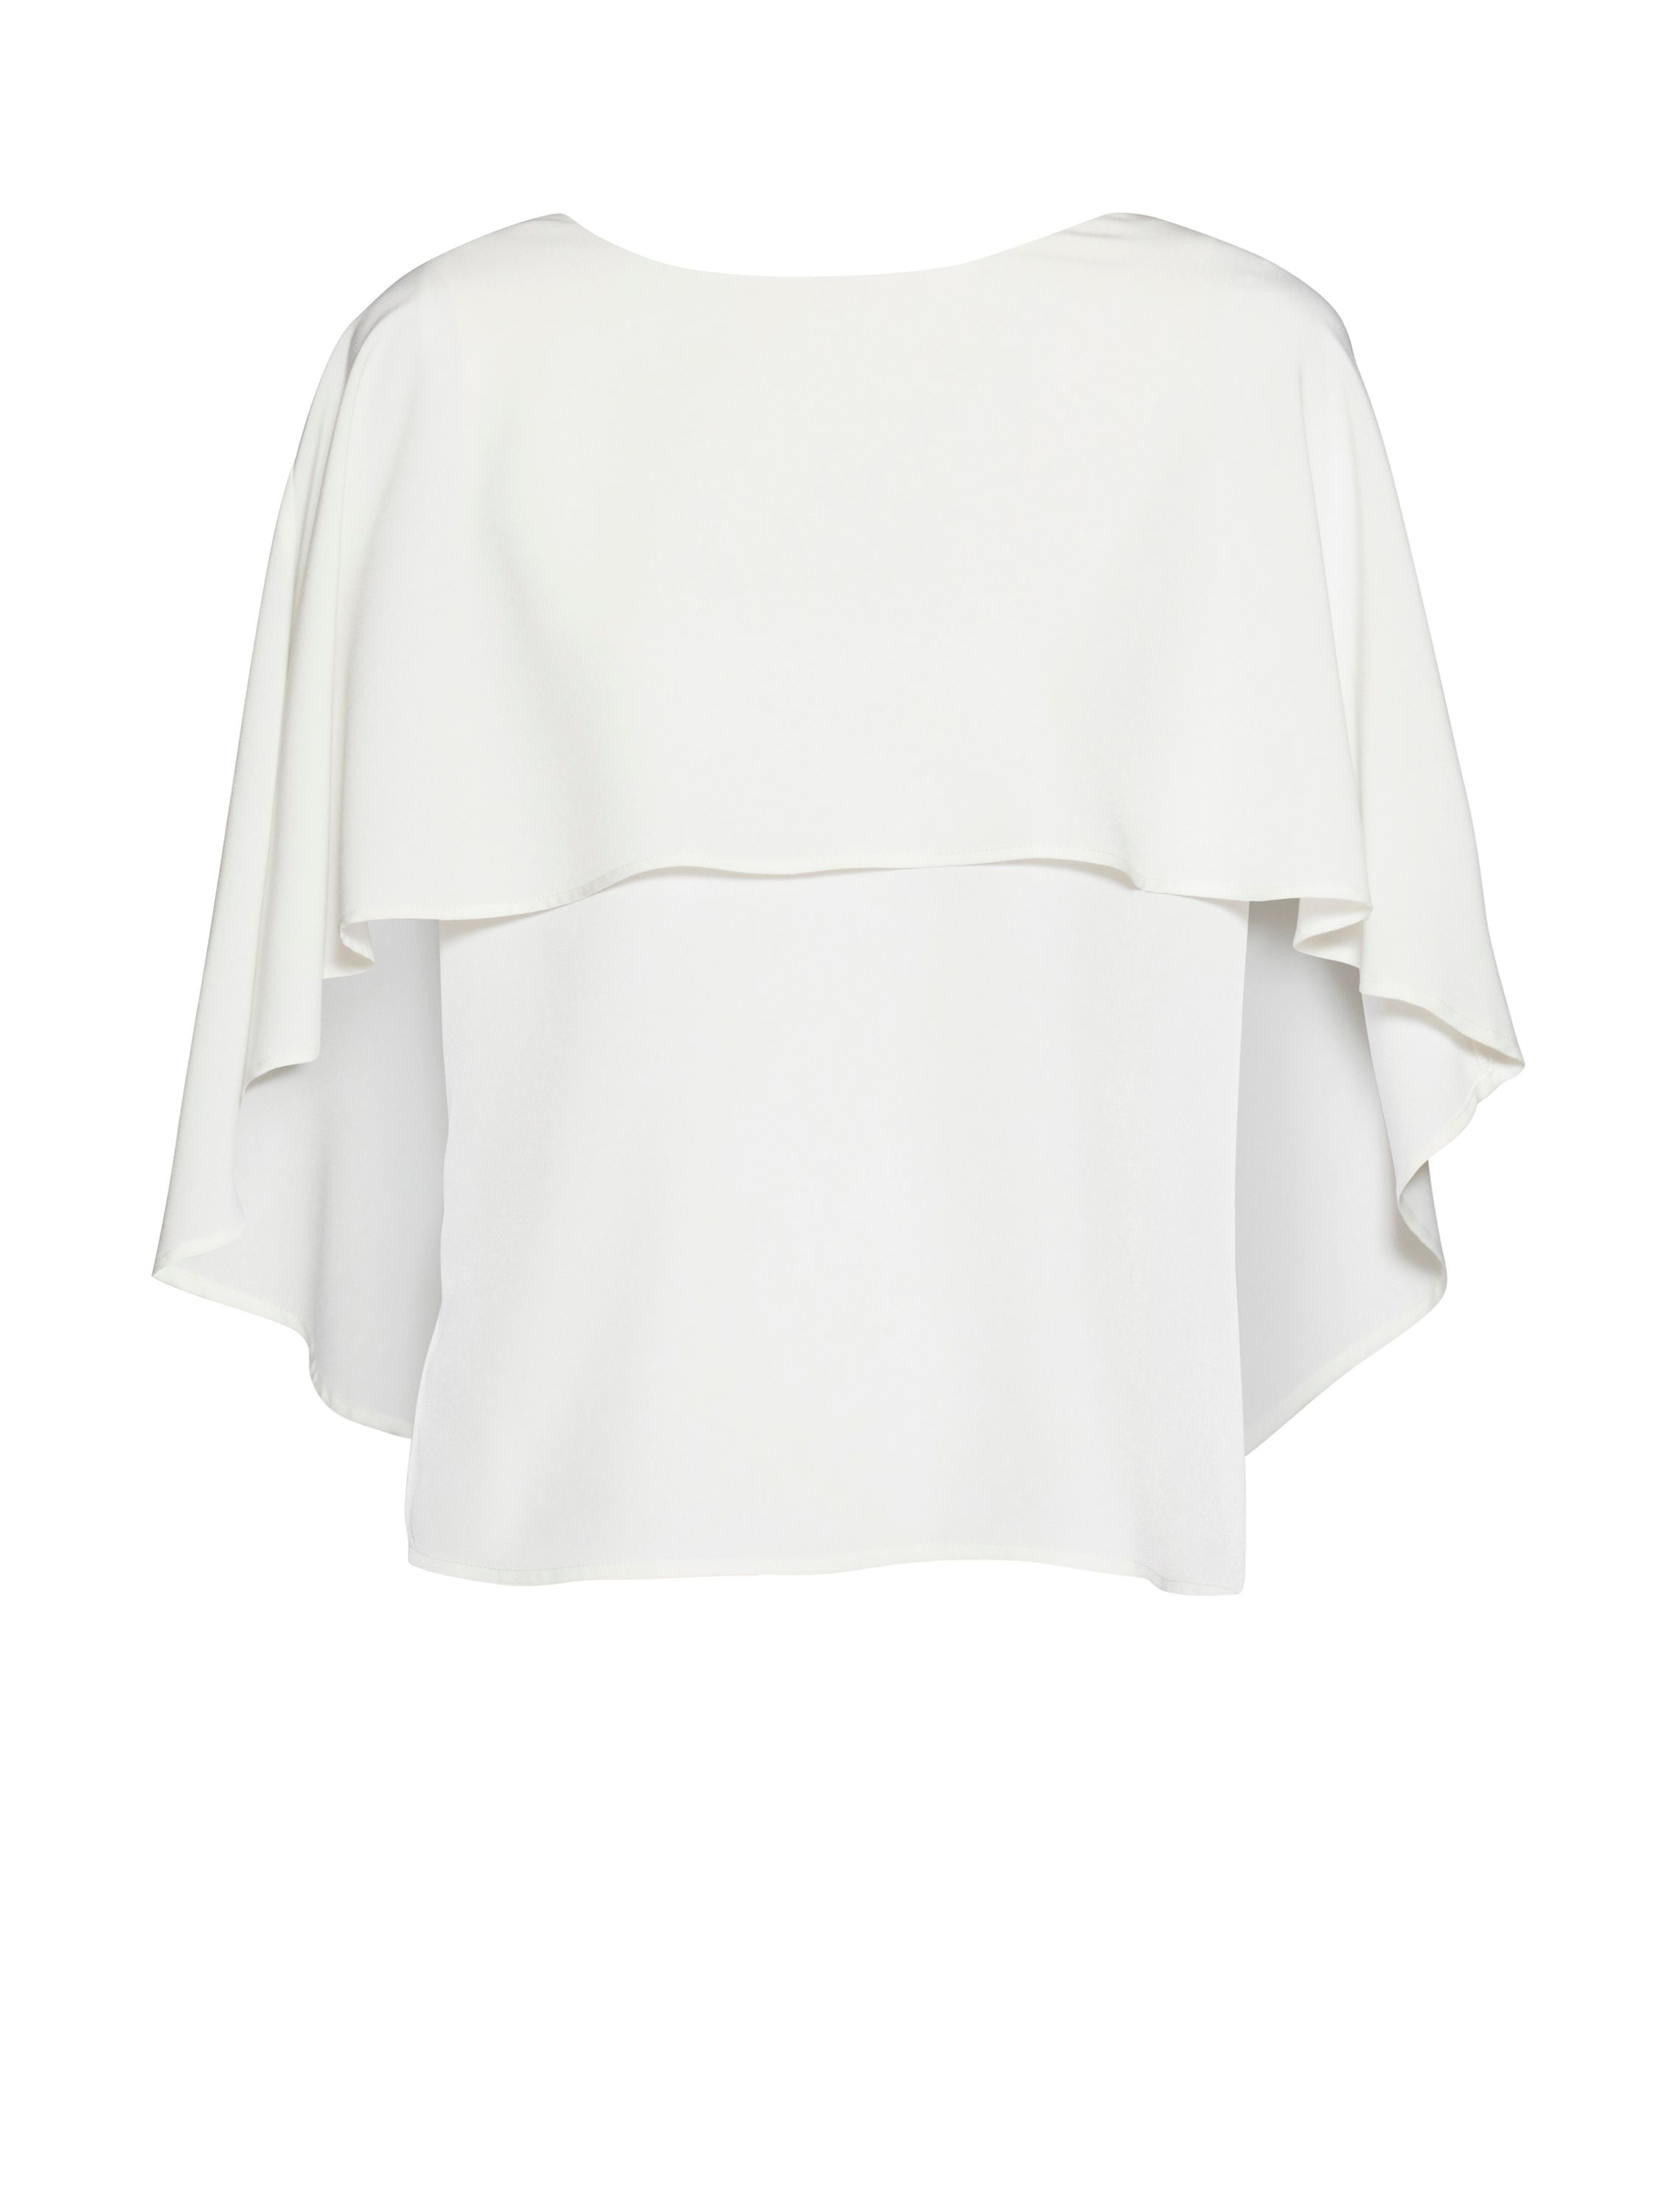 Gina Bacconi Soho crepe top with cape detail, Cream